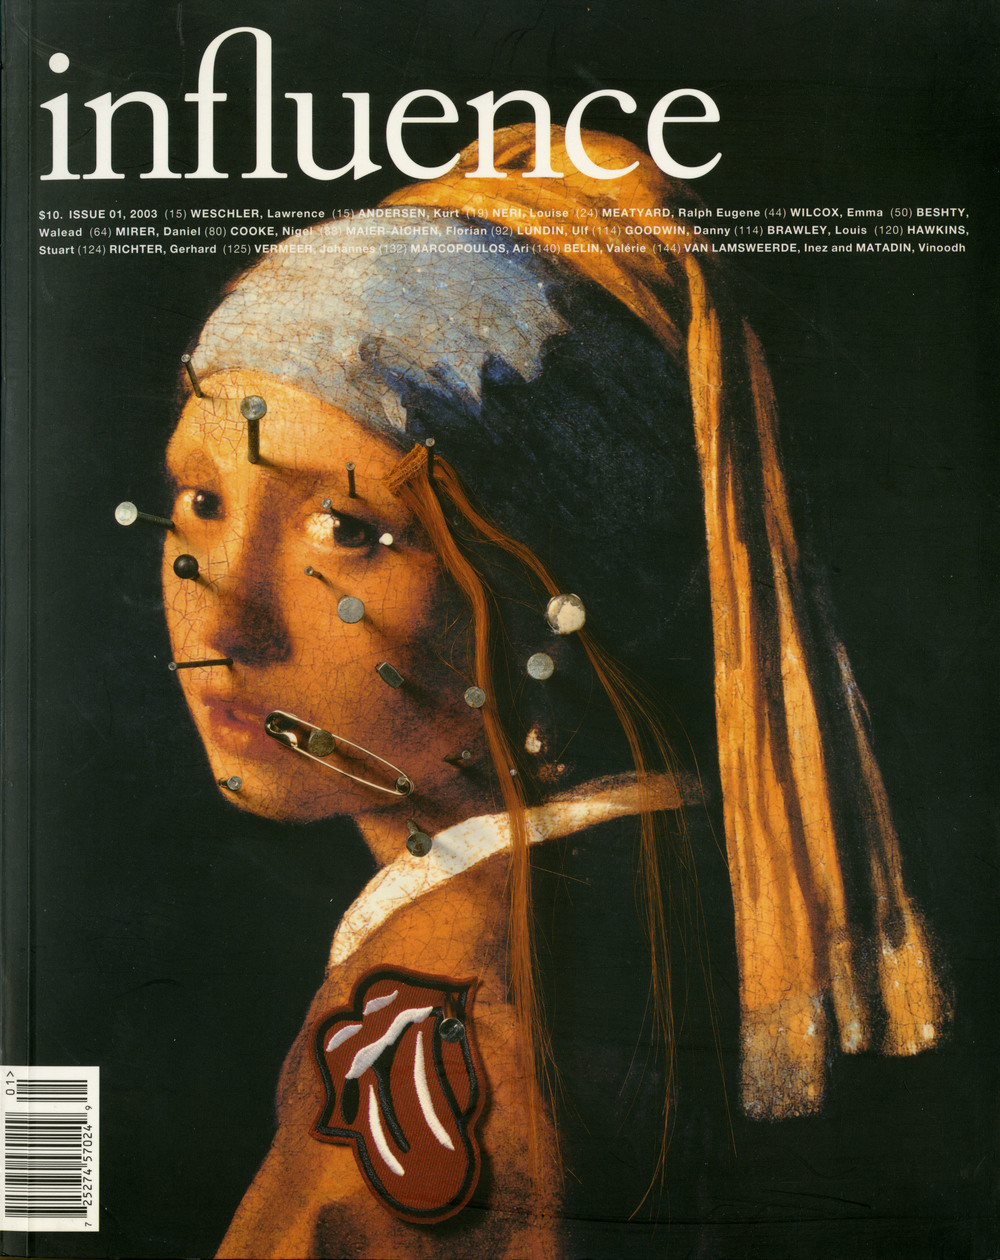 Influence issue 01 - text+editor - 2003 001.jpg